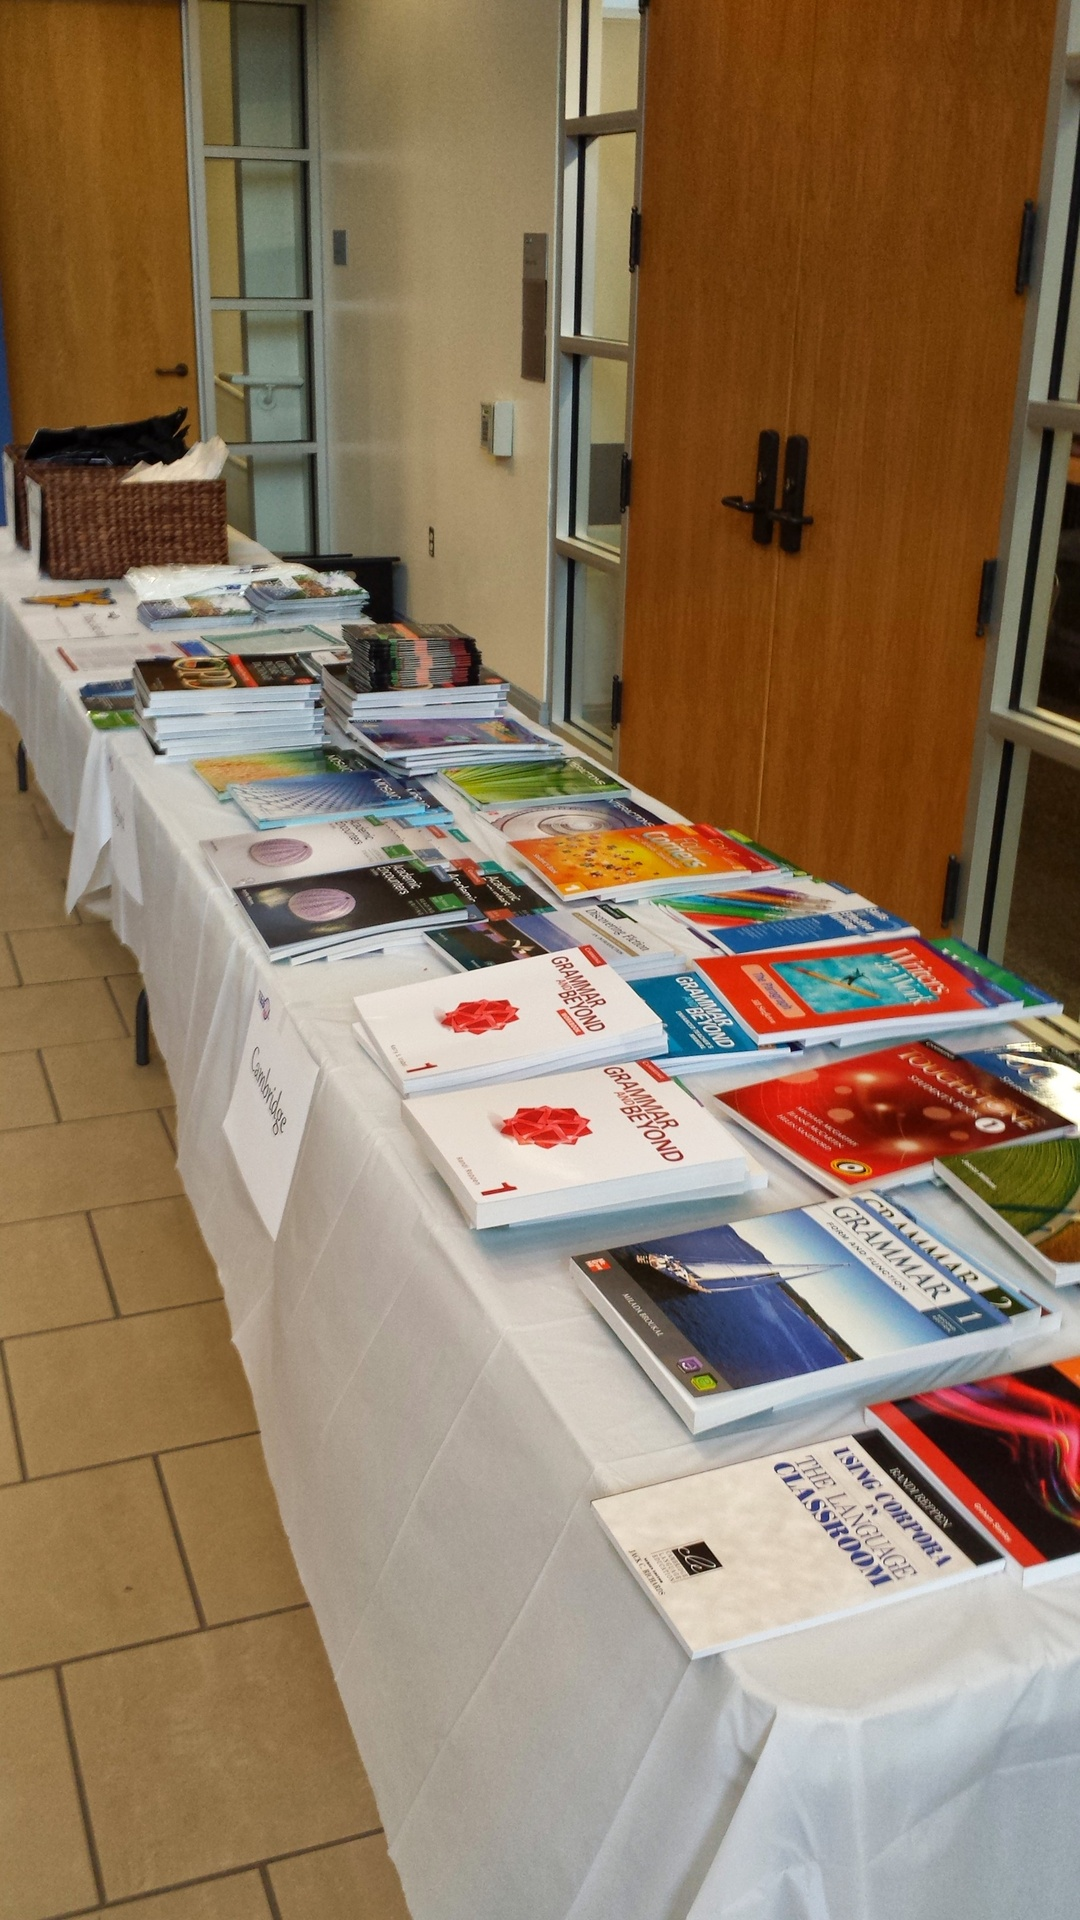 Publishers' materials